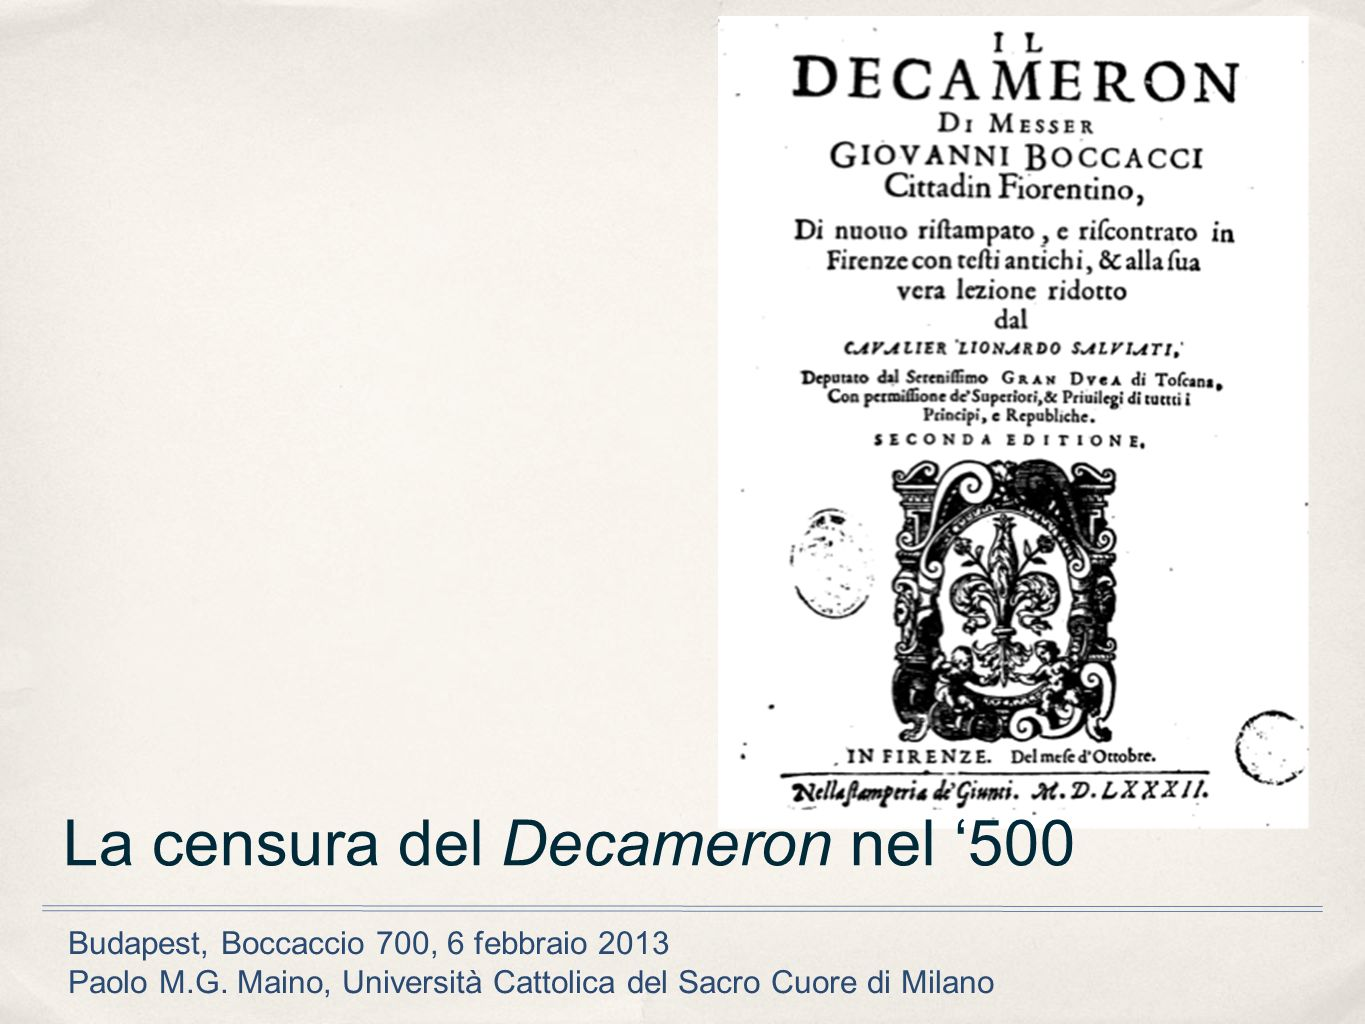 La censura del Decameron nel '500